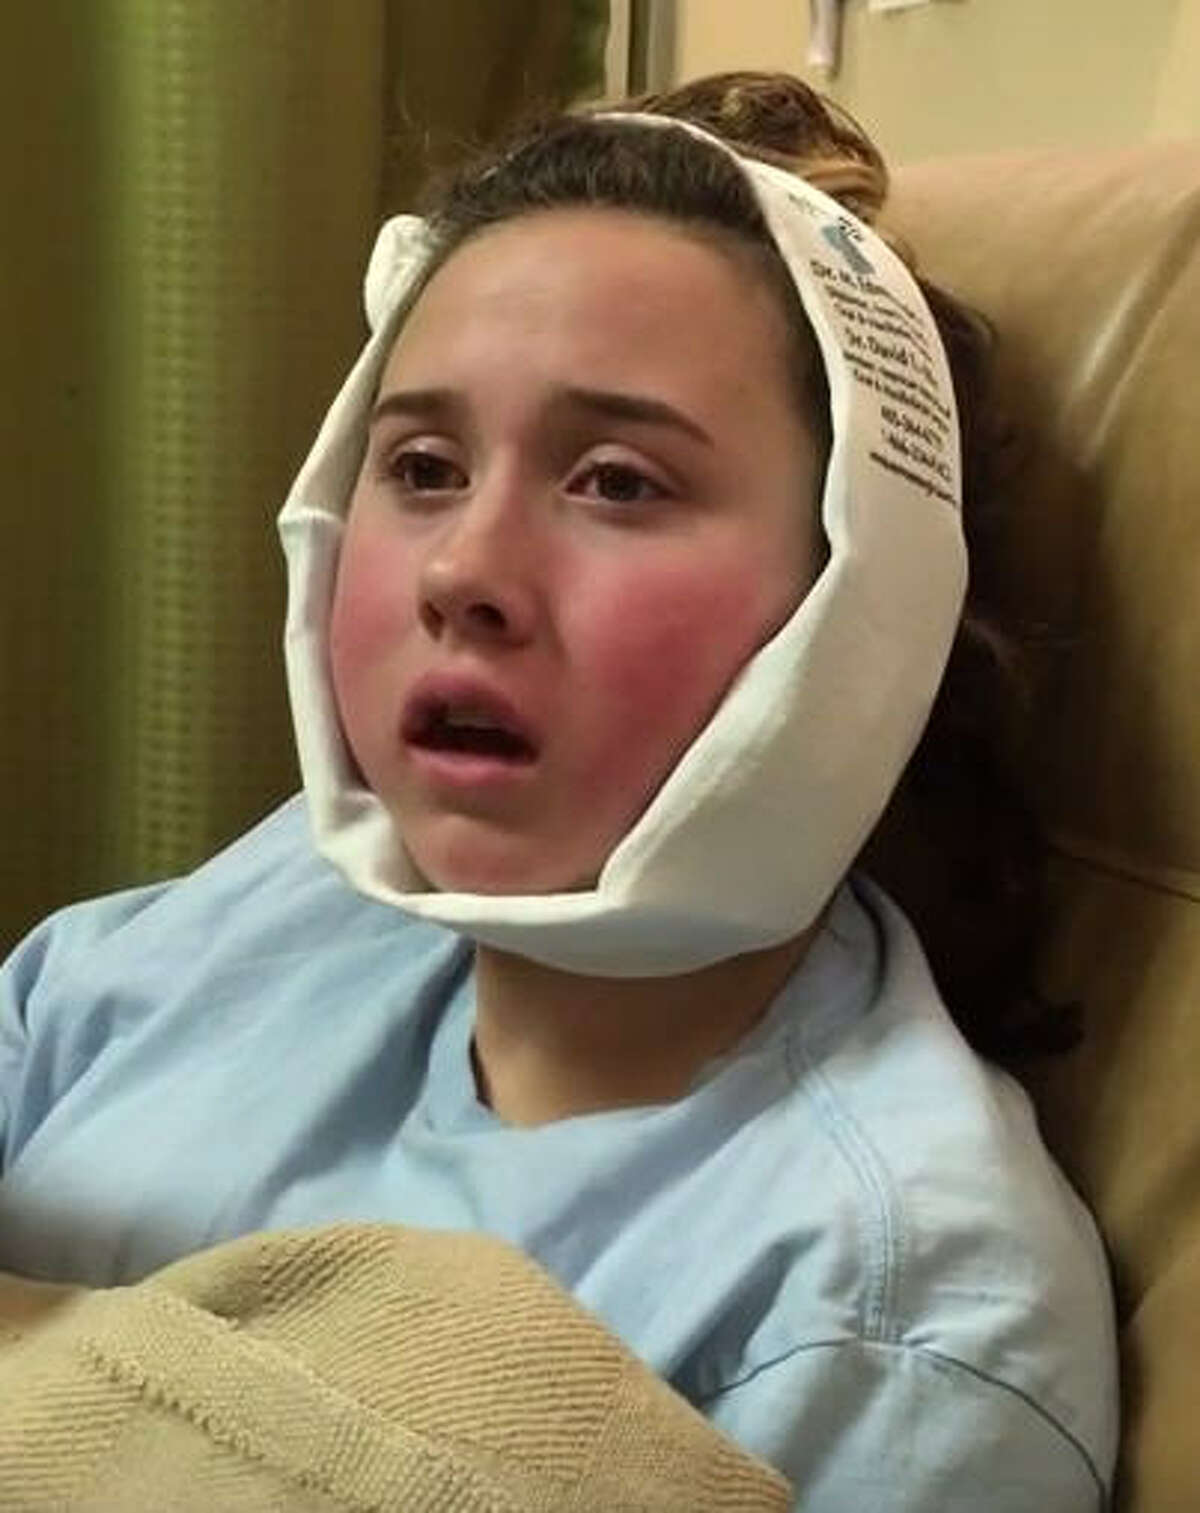 A viral video making the rounds this week, uploaded in late December, shows a girl named Taylor from fresh from wisdom teeth surgery struggling to comprehend that Whataburger had closed. Click through for more tales from the history of Whataburger...